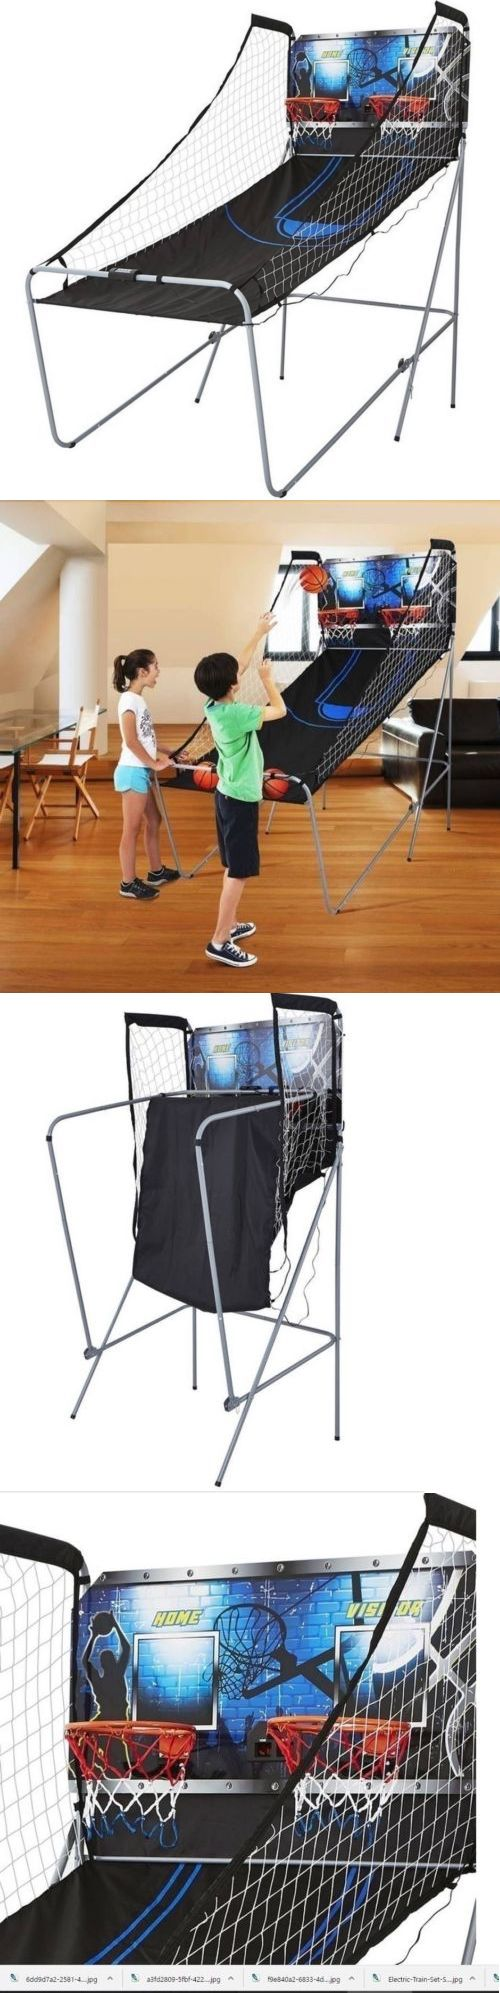 Other Indoor Games 36278: Basketball Game Arcade 2 Player Style Shooting Indoor Home Electronic Foldable -> BUY IT NOW ONLY: $77.72 on eBay!